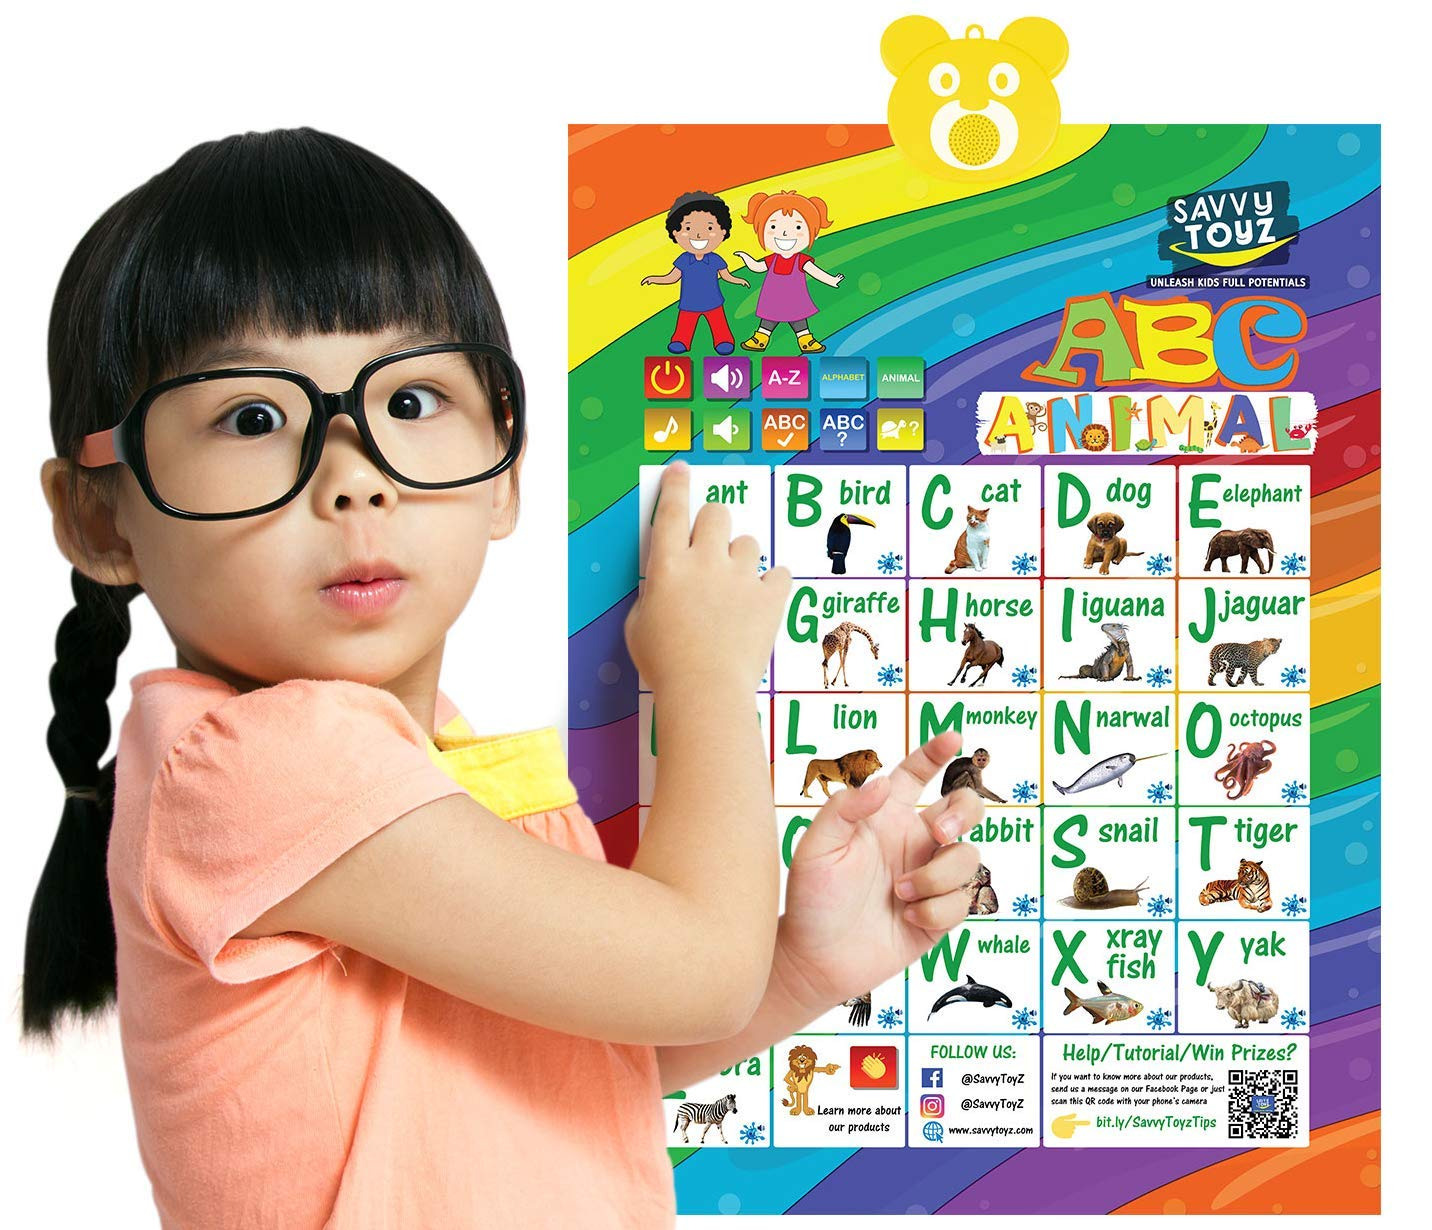 SavvyToyZ Educational Toys for 2-5 Year Olds - Help Your Toddler's Development and Education with Preschool Learning Toys - Fun Talking Interactive Poster for Entertainment and Learning Alphabet